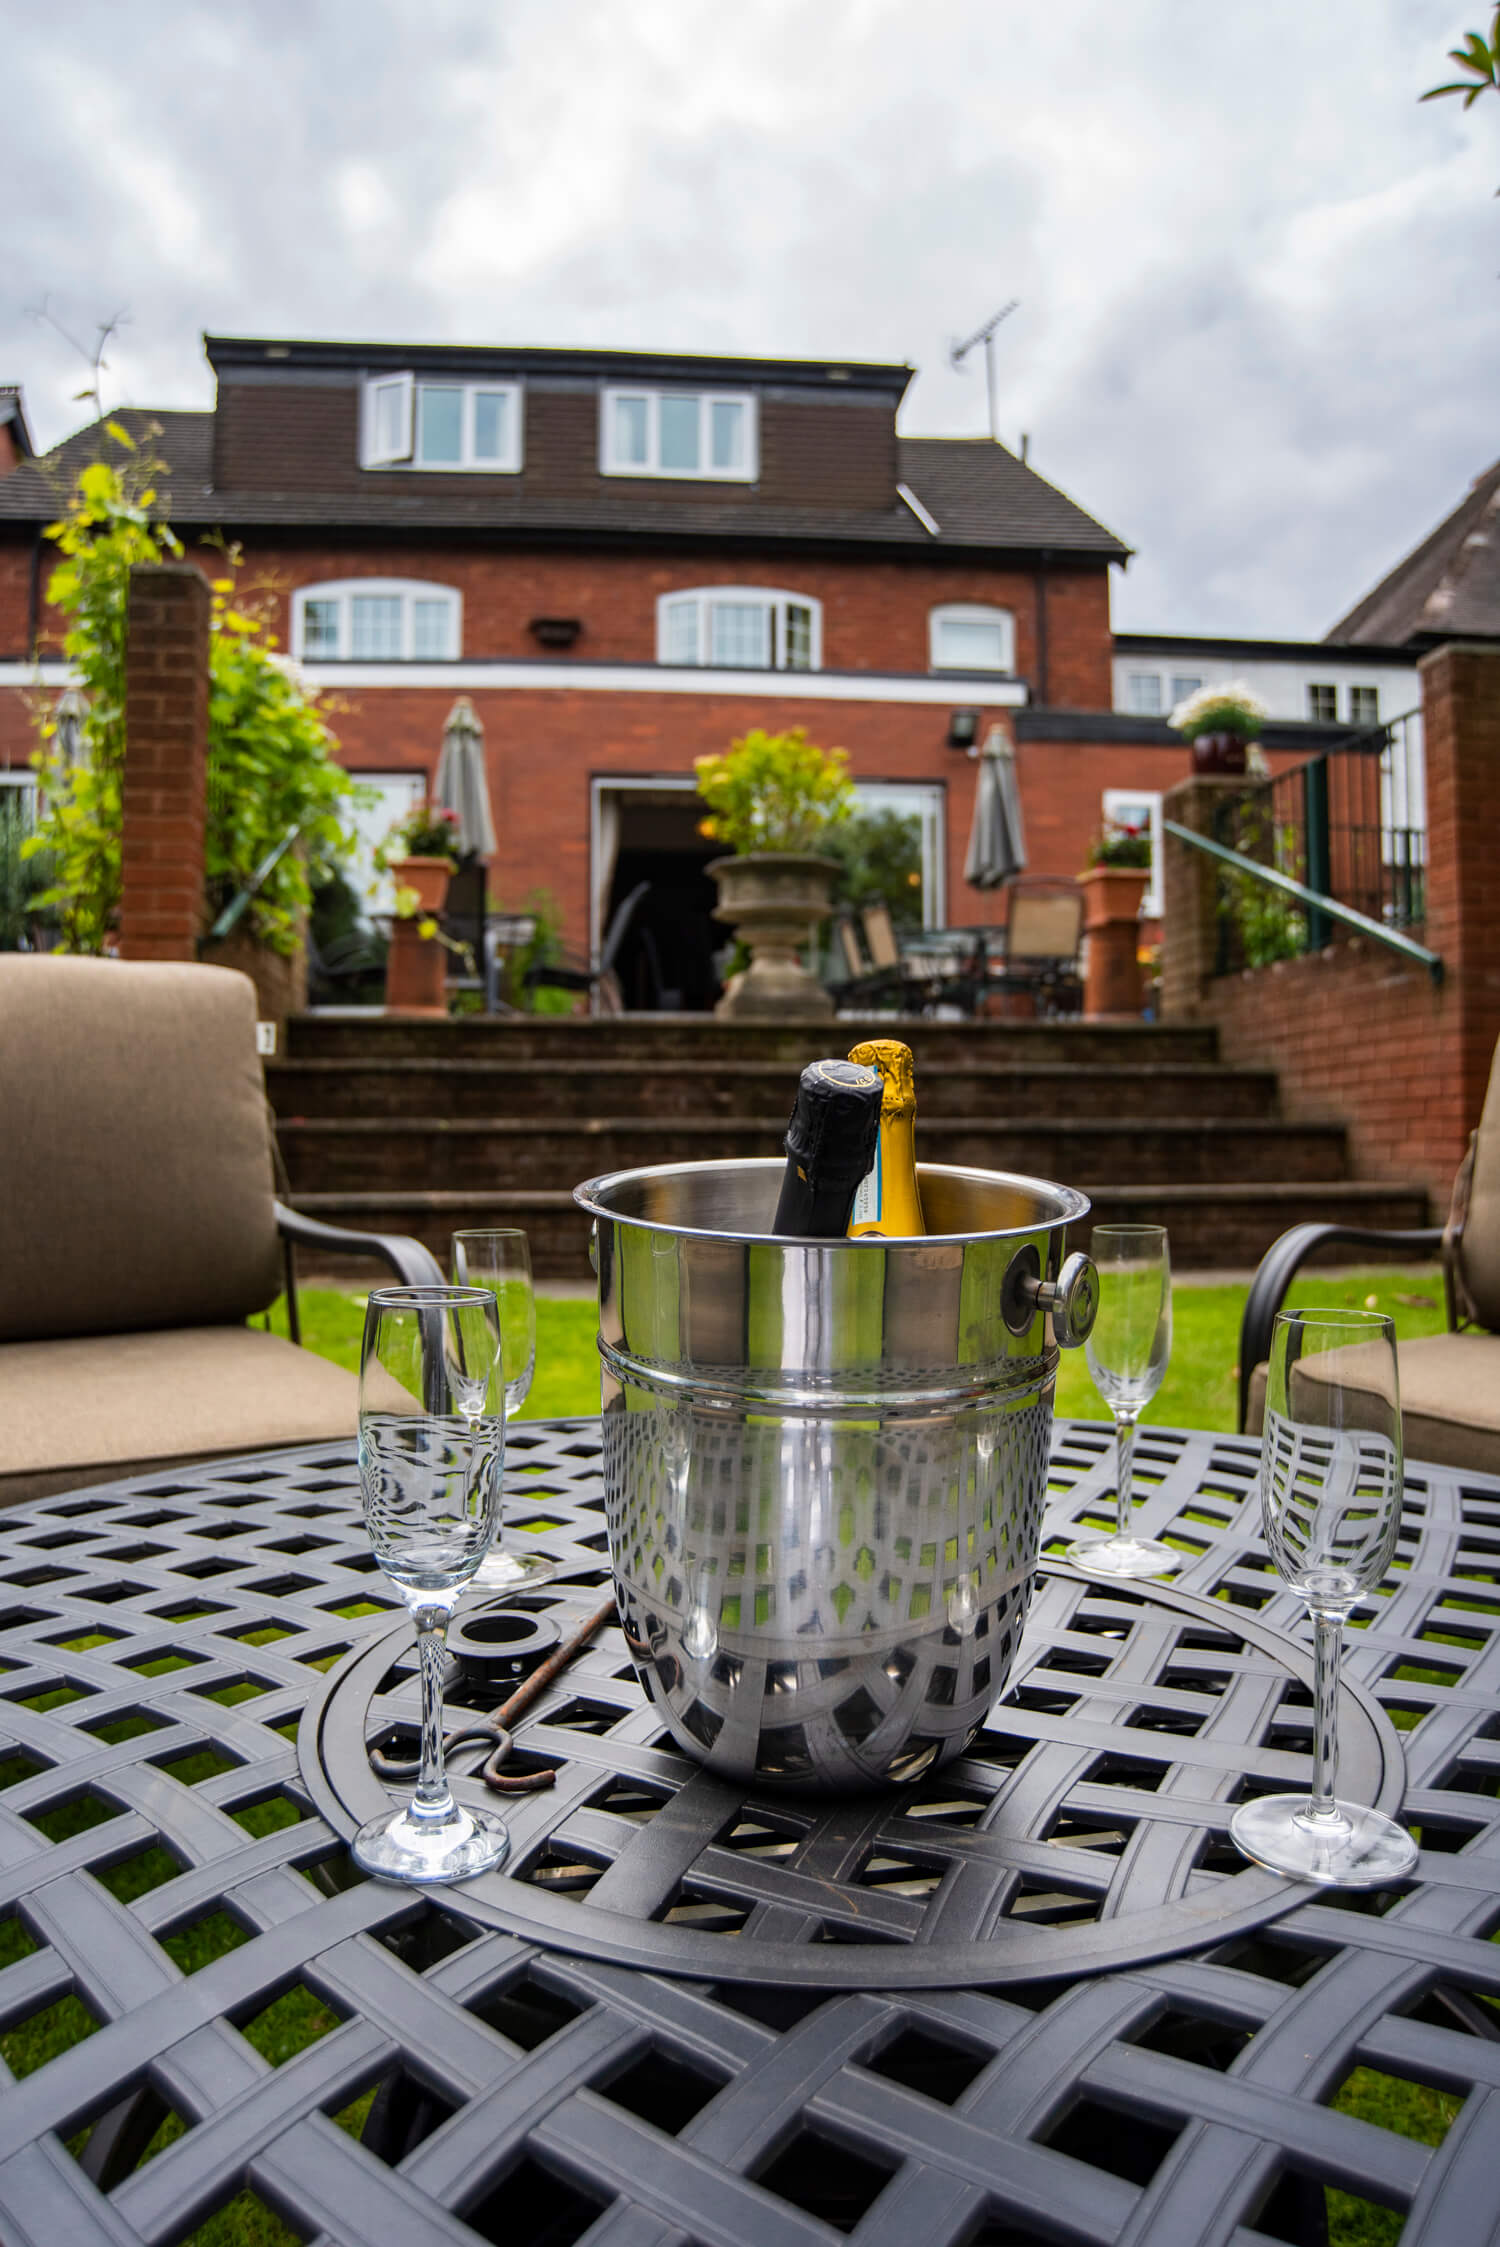 Westbourne Lodge Hotel Shoot - Edgbaston Birmingham (1)